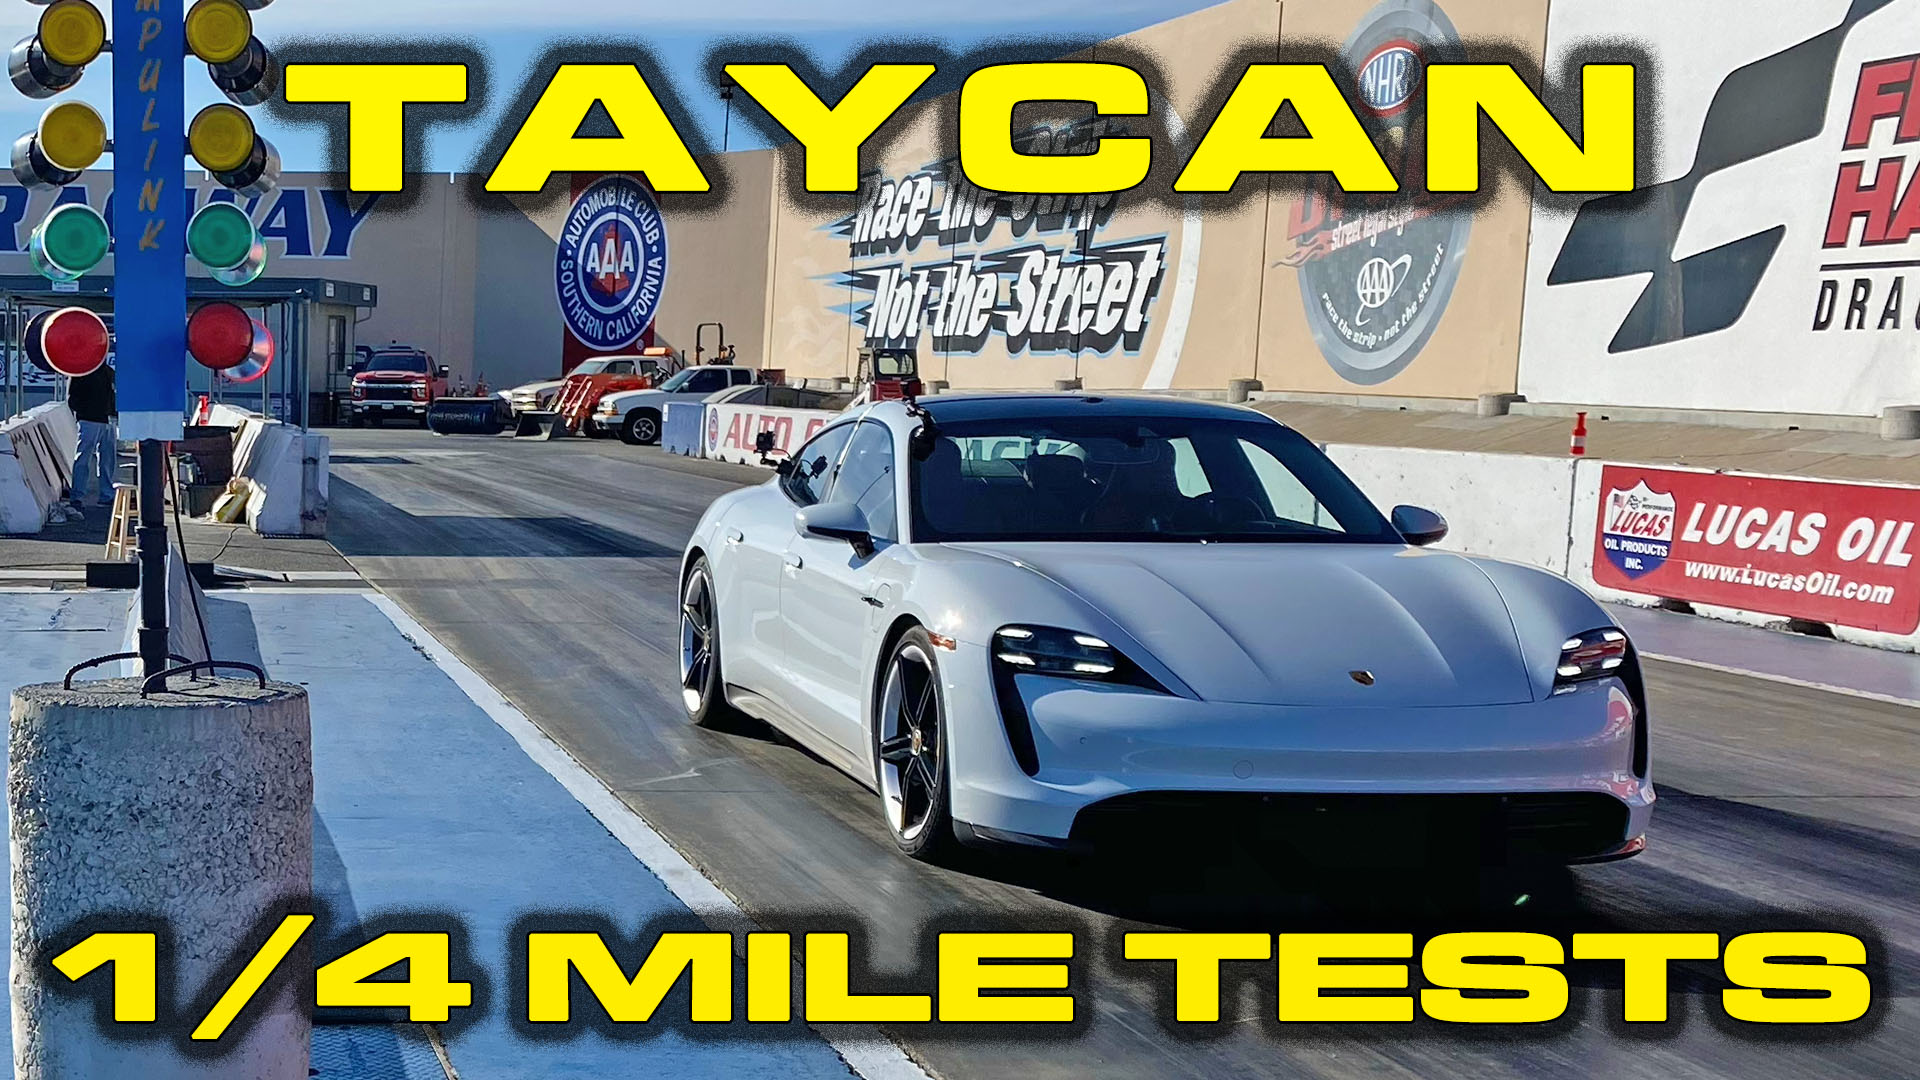 FIRST Porsche Taycan Turbo S run down the 1/4 Mile